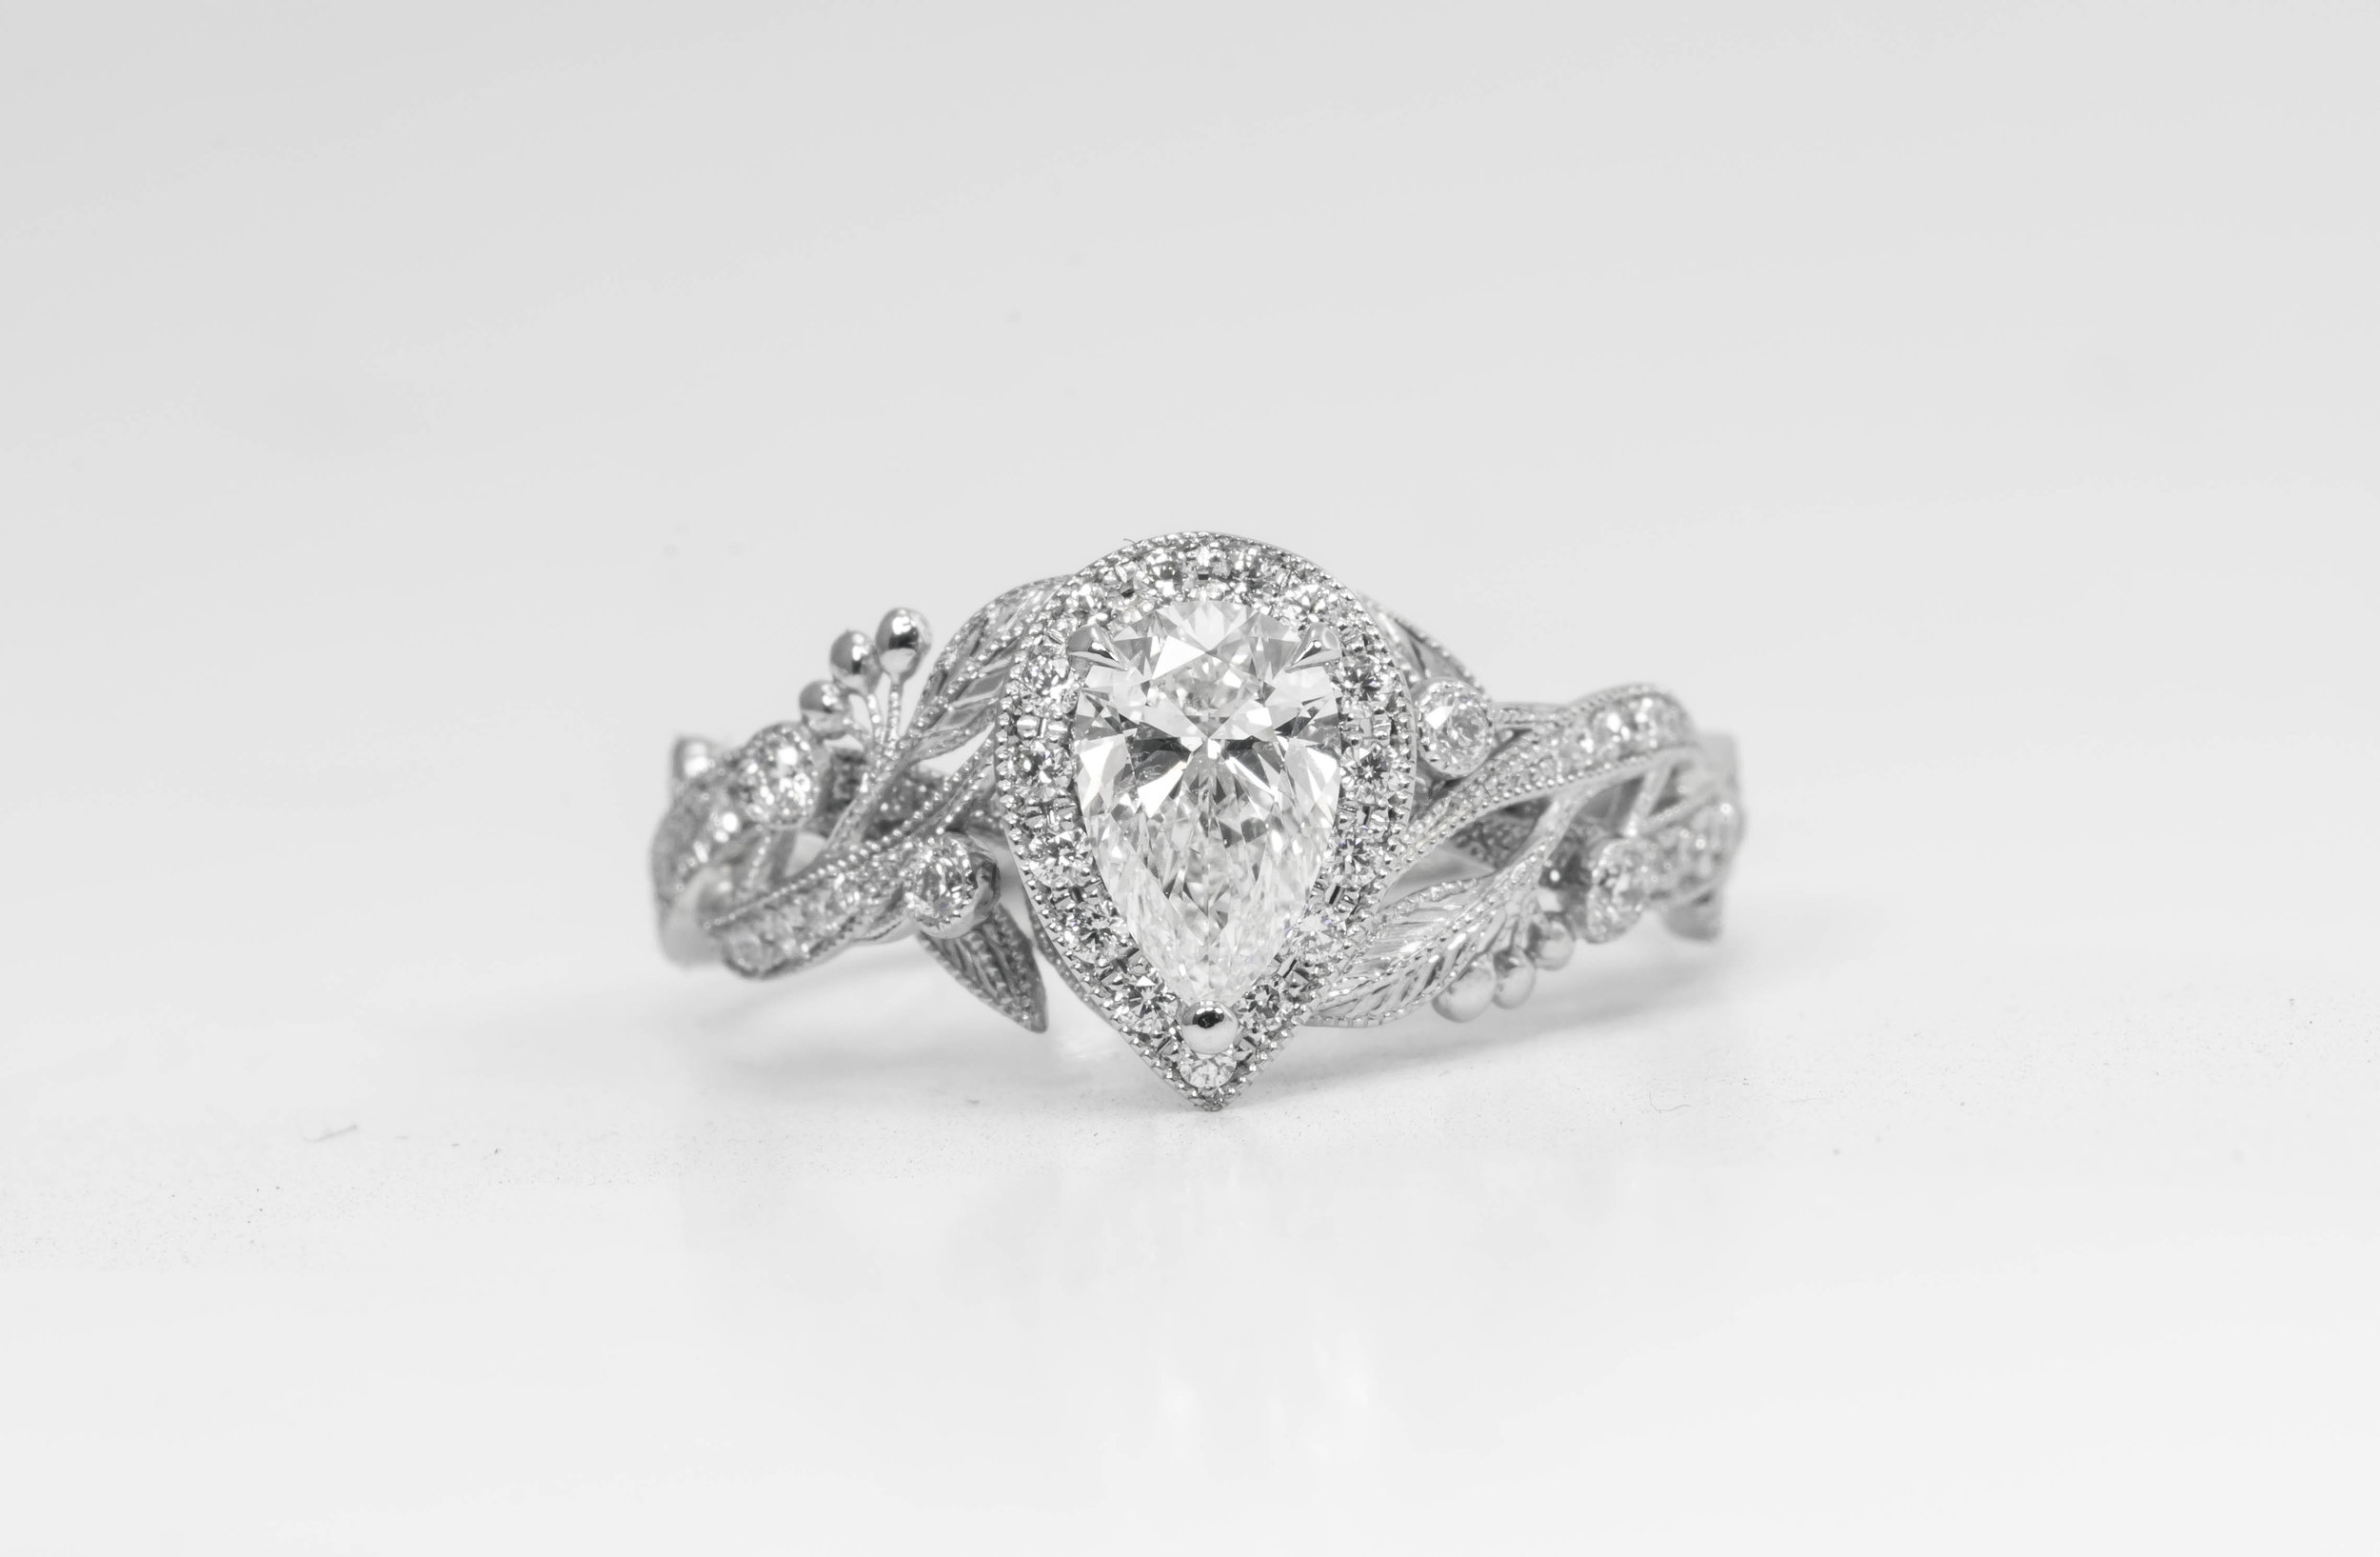 Platinum mounted pear shaped diamond with foliate shoulders. Made in Chichester, England.